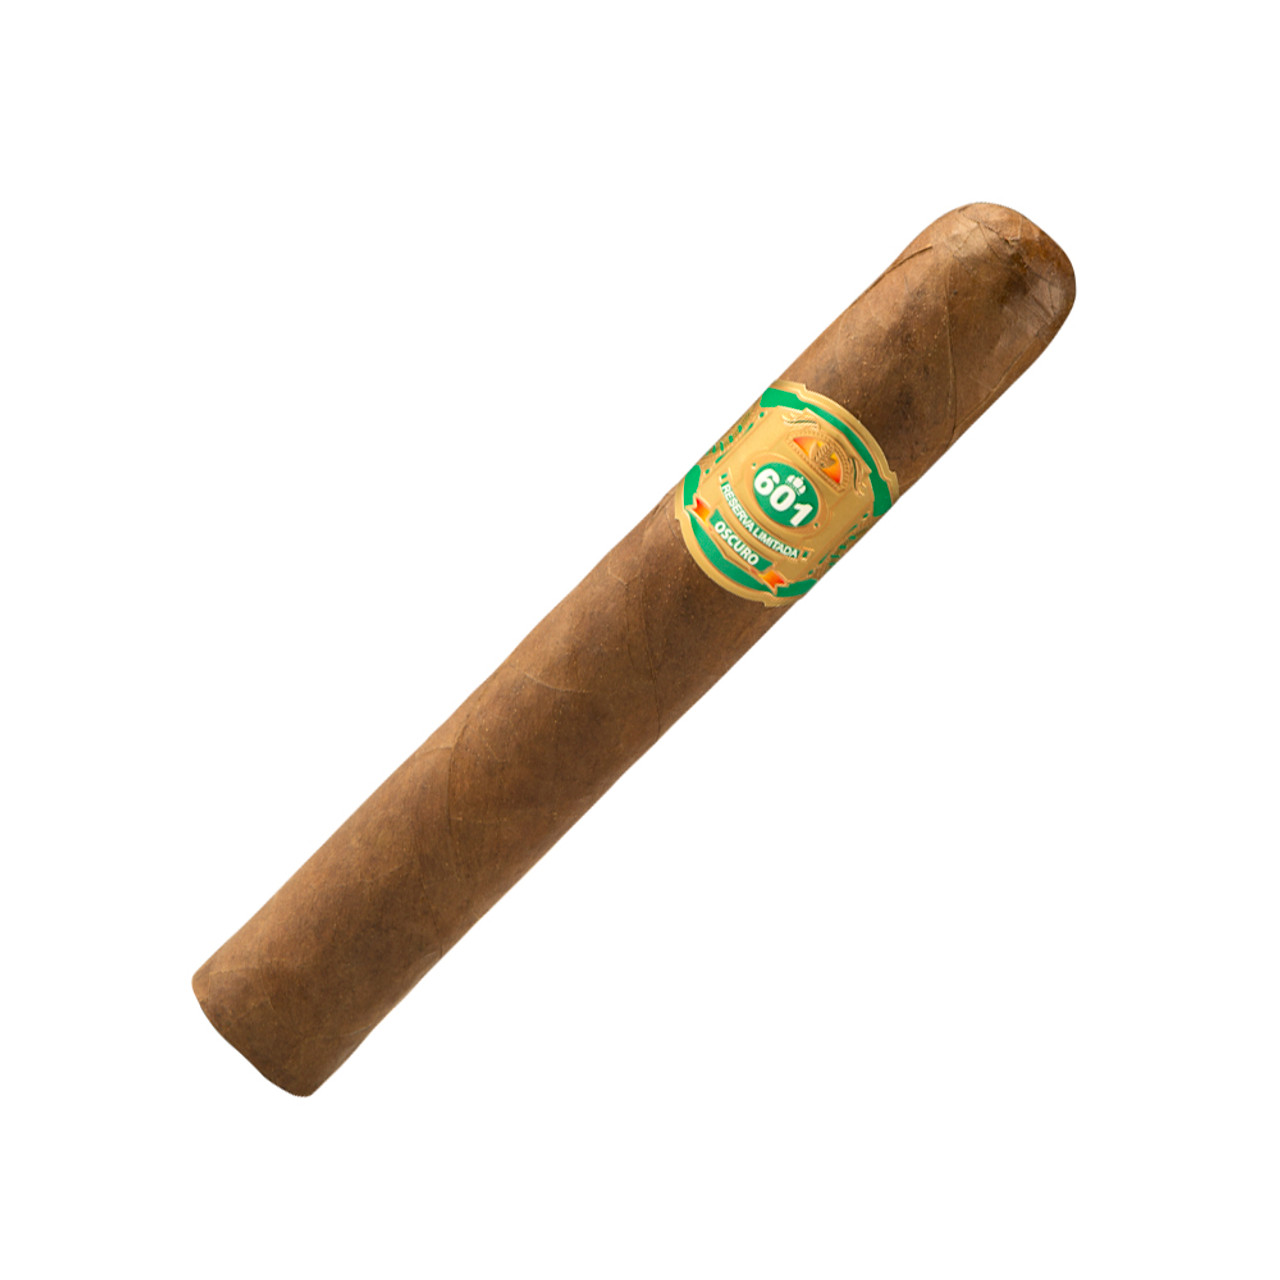 601 Green Label Trabuco Cigars - 6.12 x 58 (Box of 20)